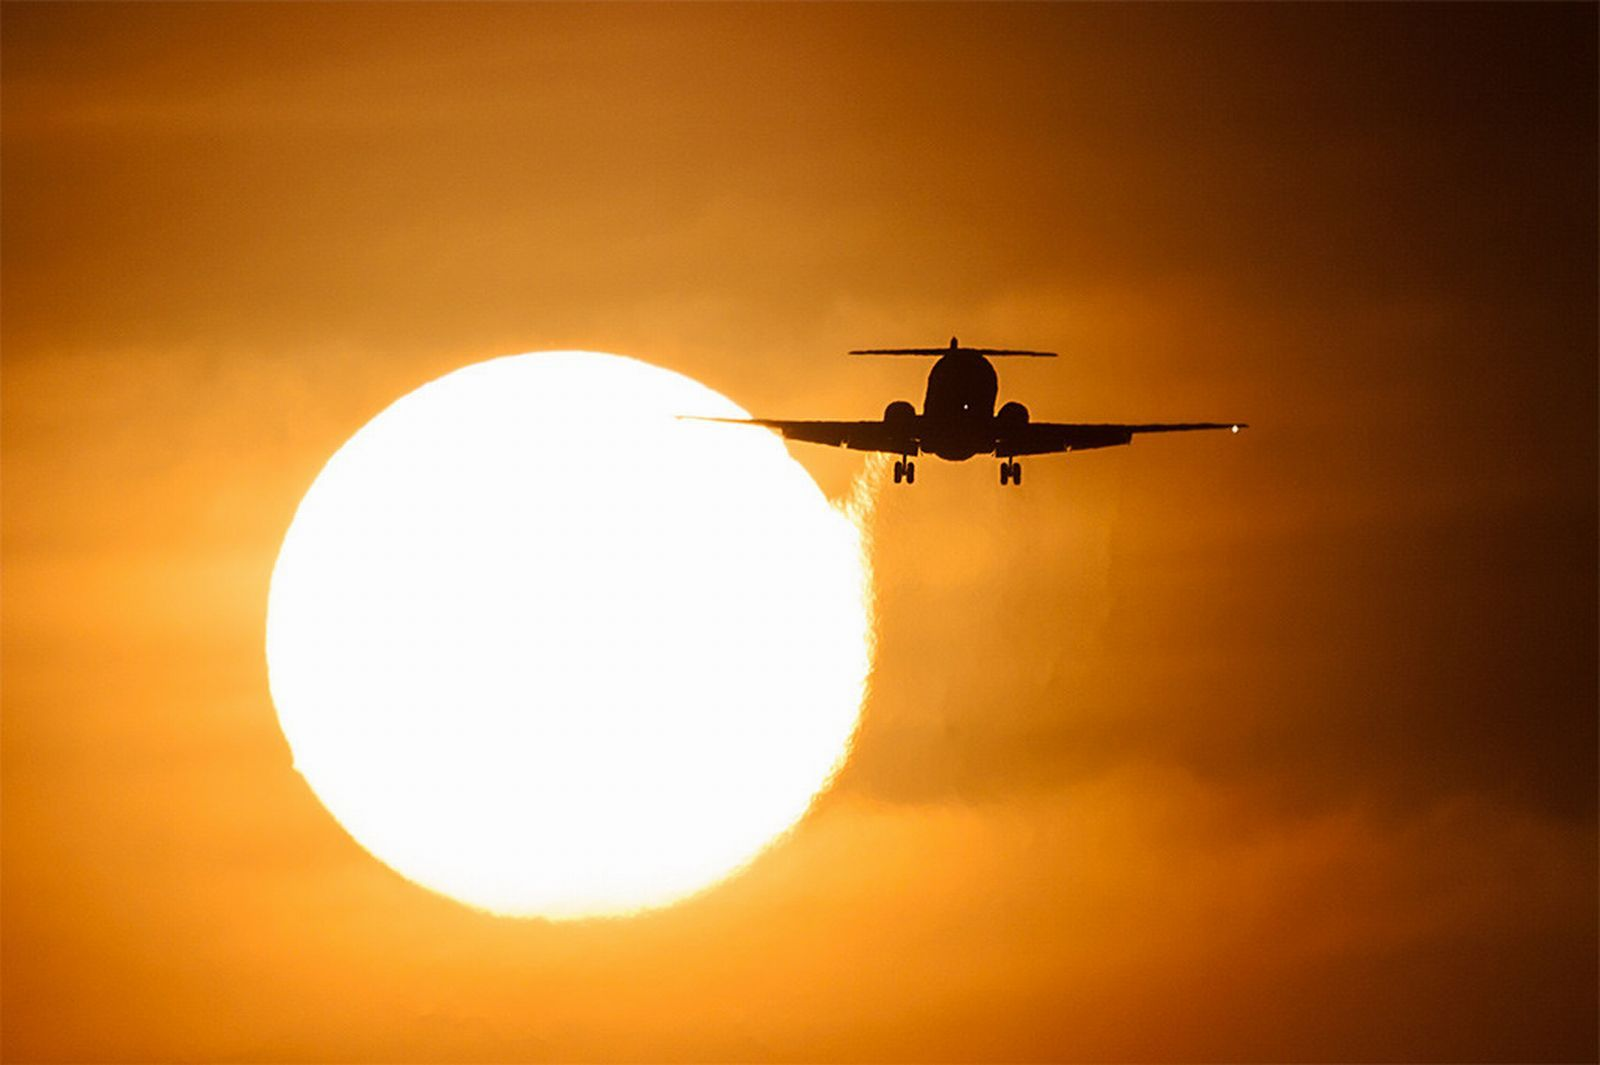 Sunset with Airplane Wallpaper PC Wallpaper